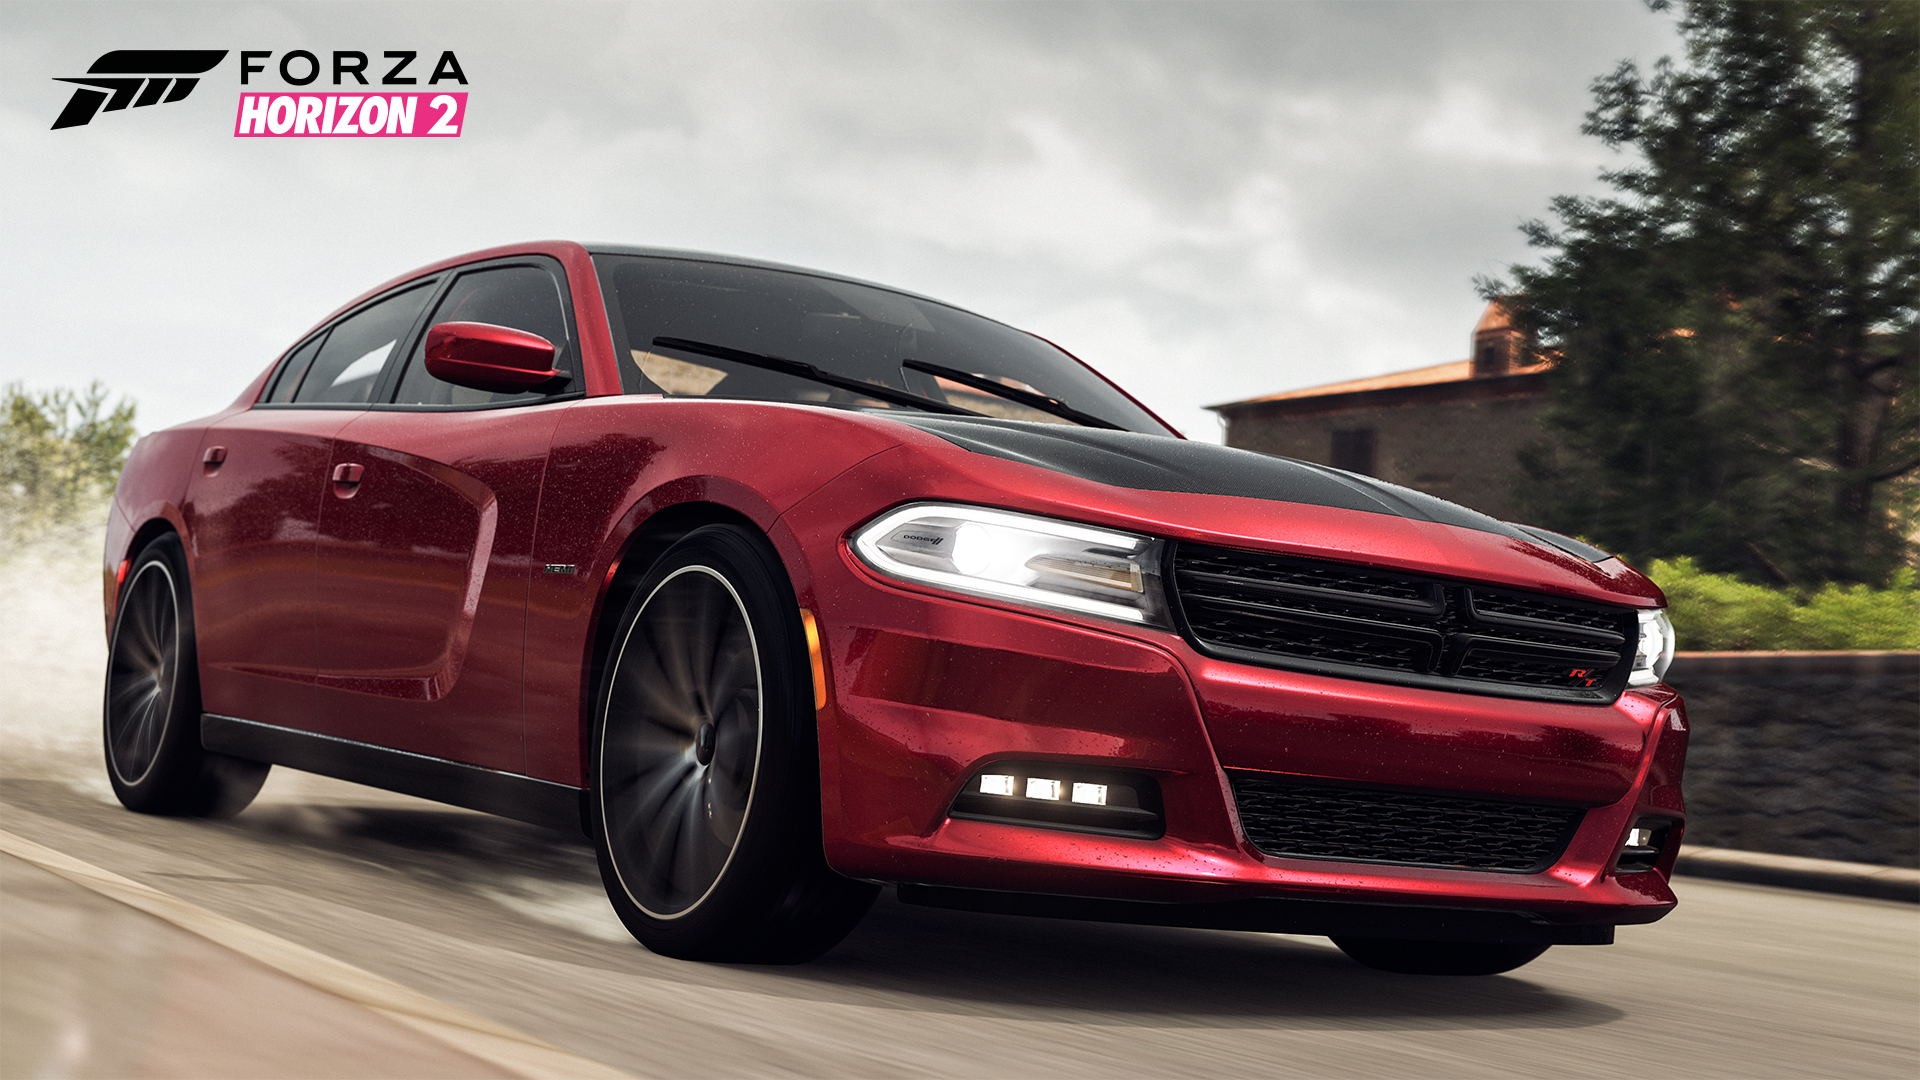 2015 Dodge Charger RT Fast Furious Edition HD Wallpaper